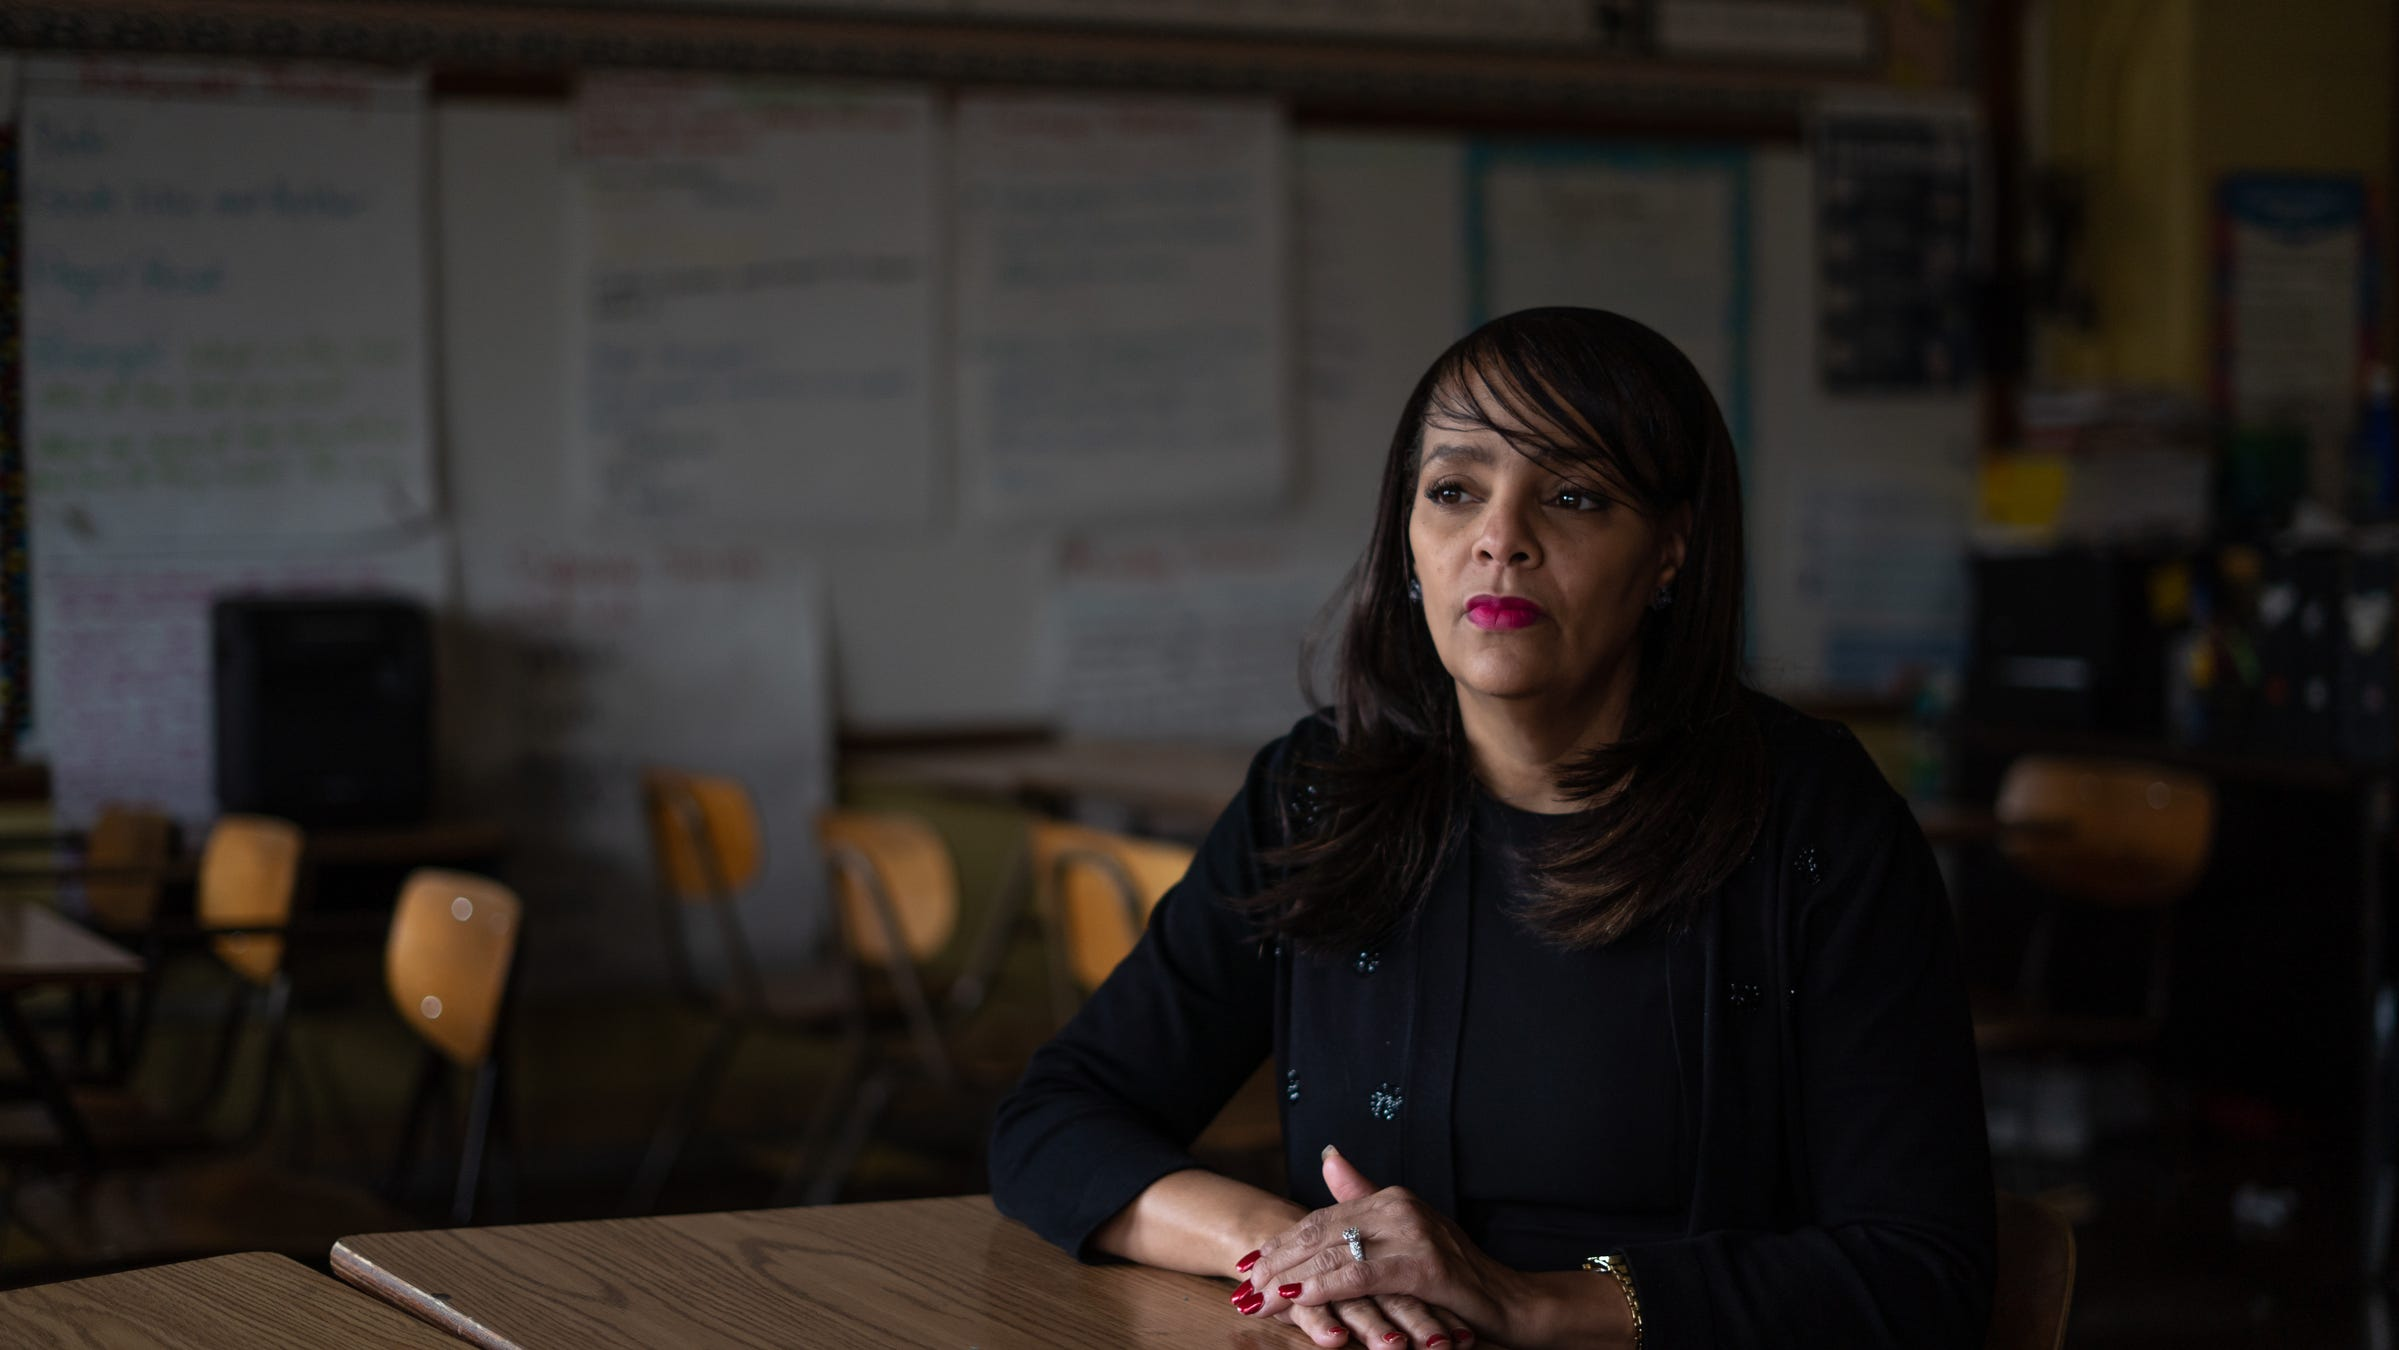 Detroit teacher: I'll never forget day my students saw mutilated body on way to school